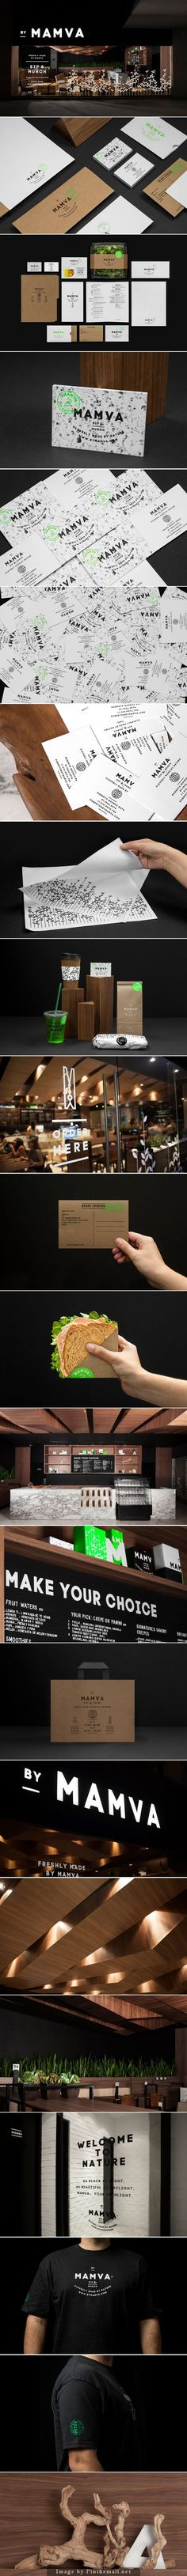 Mamva make your choice curated by Packaging Diva PD identity packaging branding